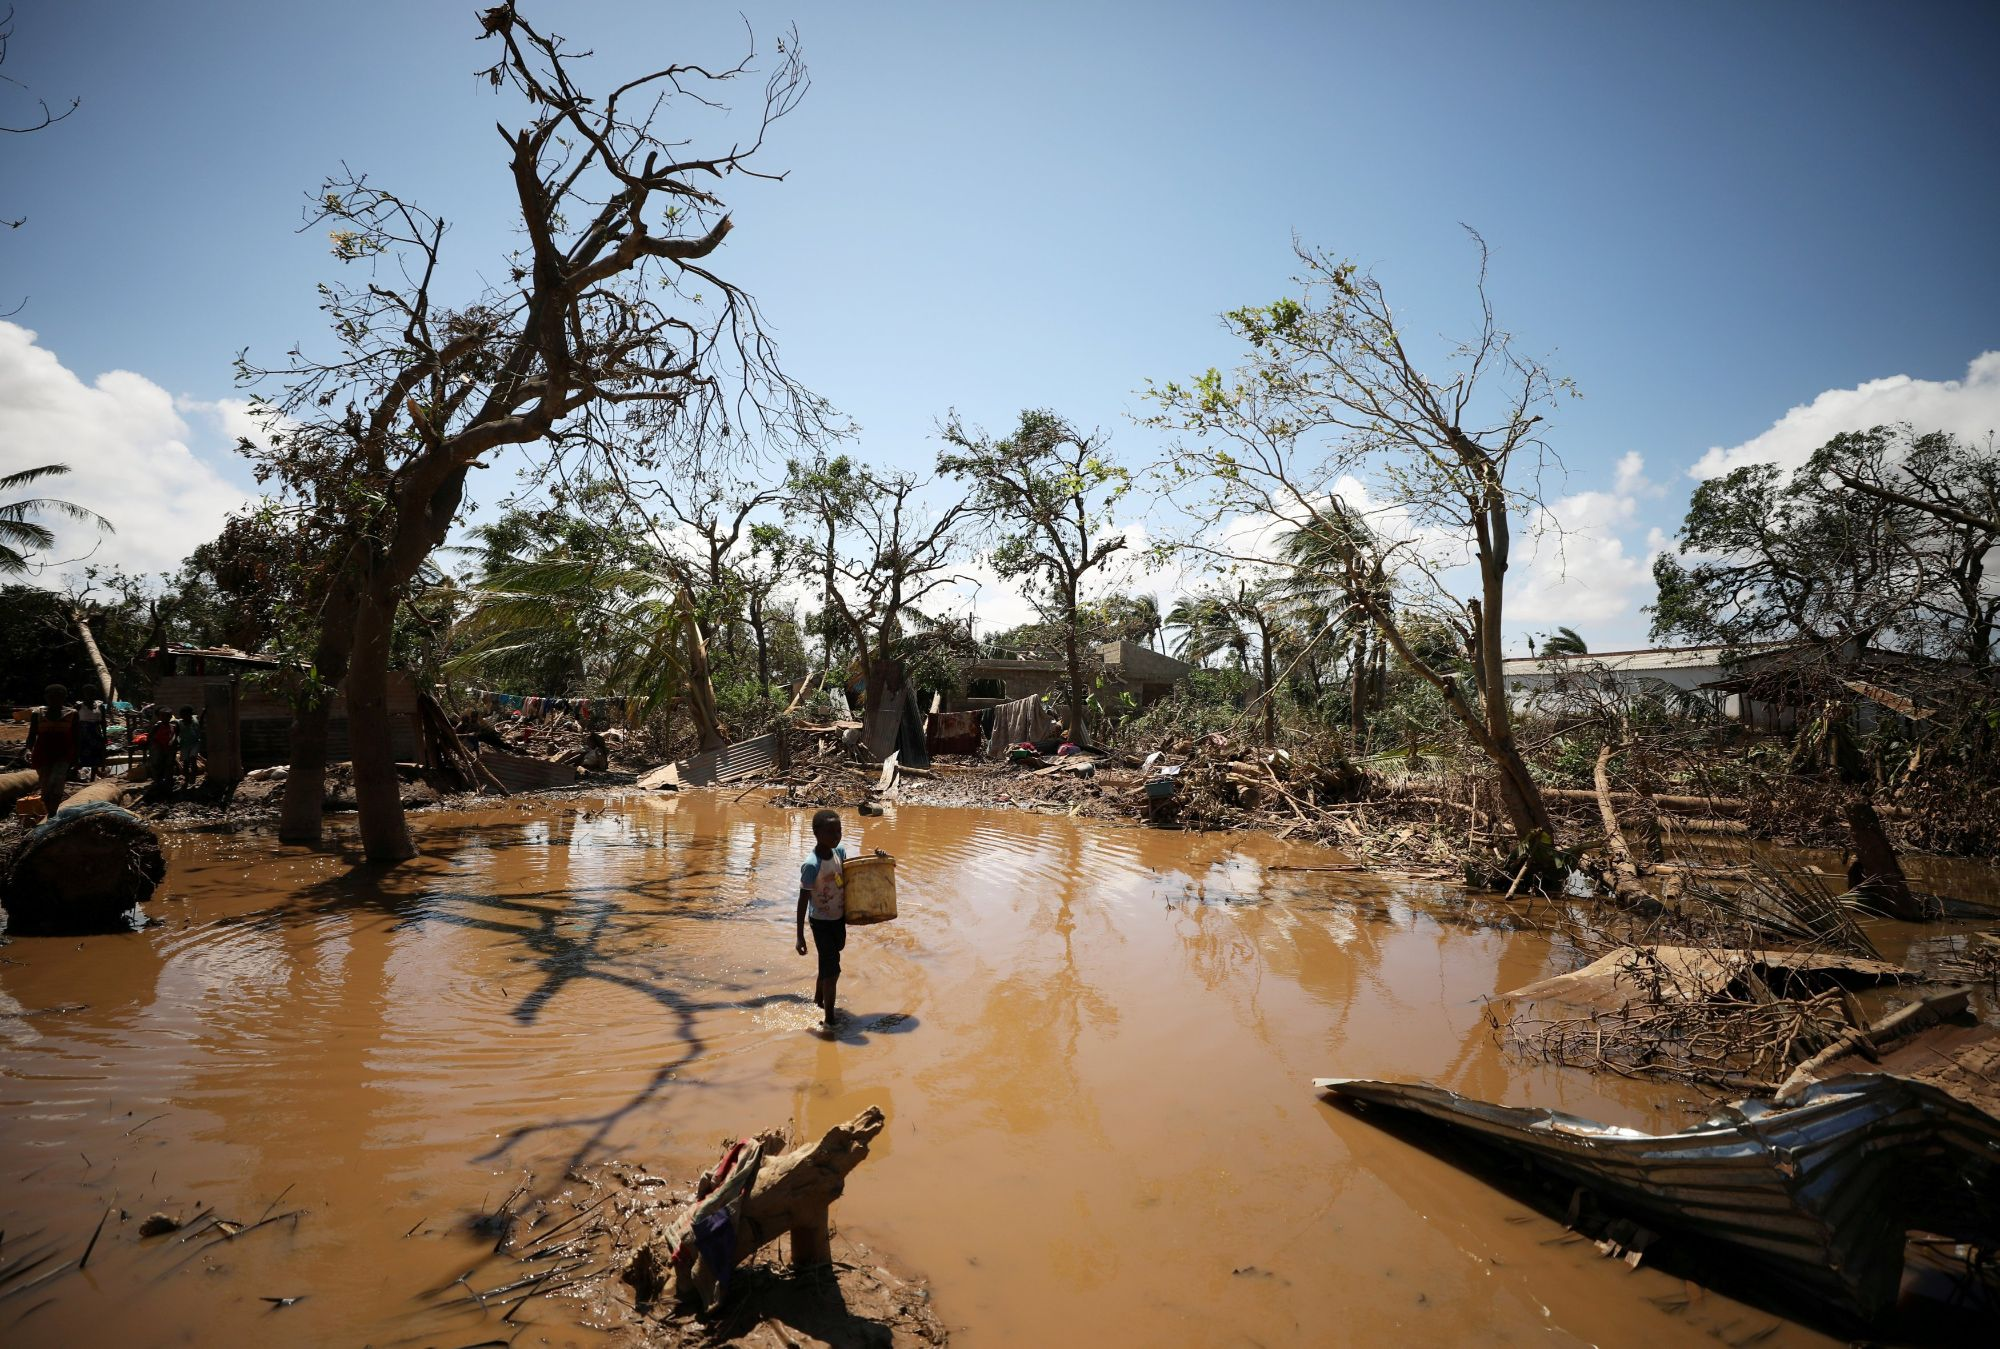 Hurricane 2 - Cyclone Idai shows why long-term disaster resilience is so crucial